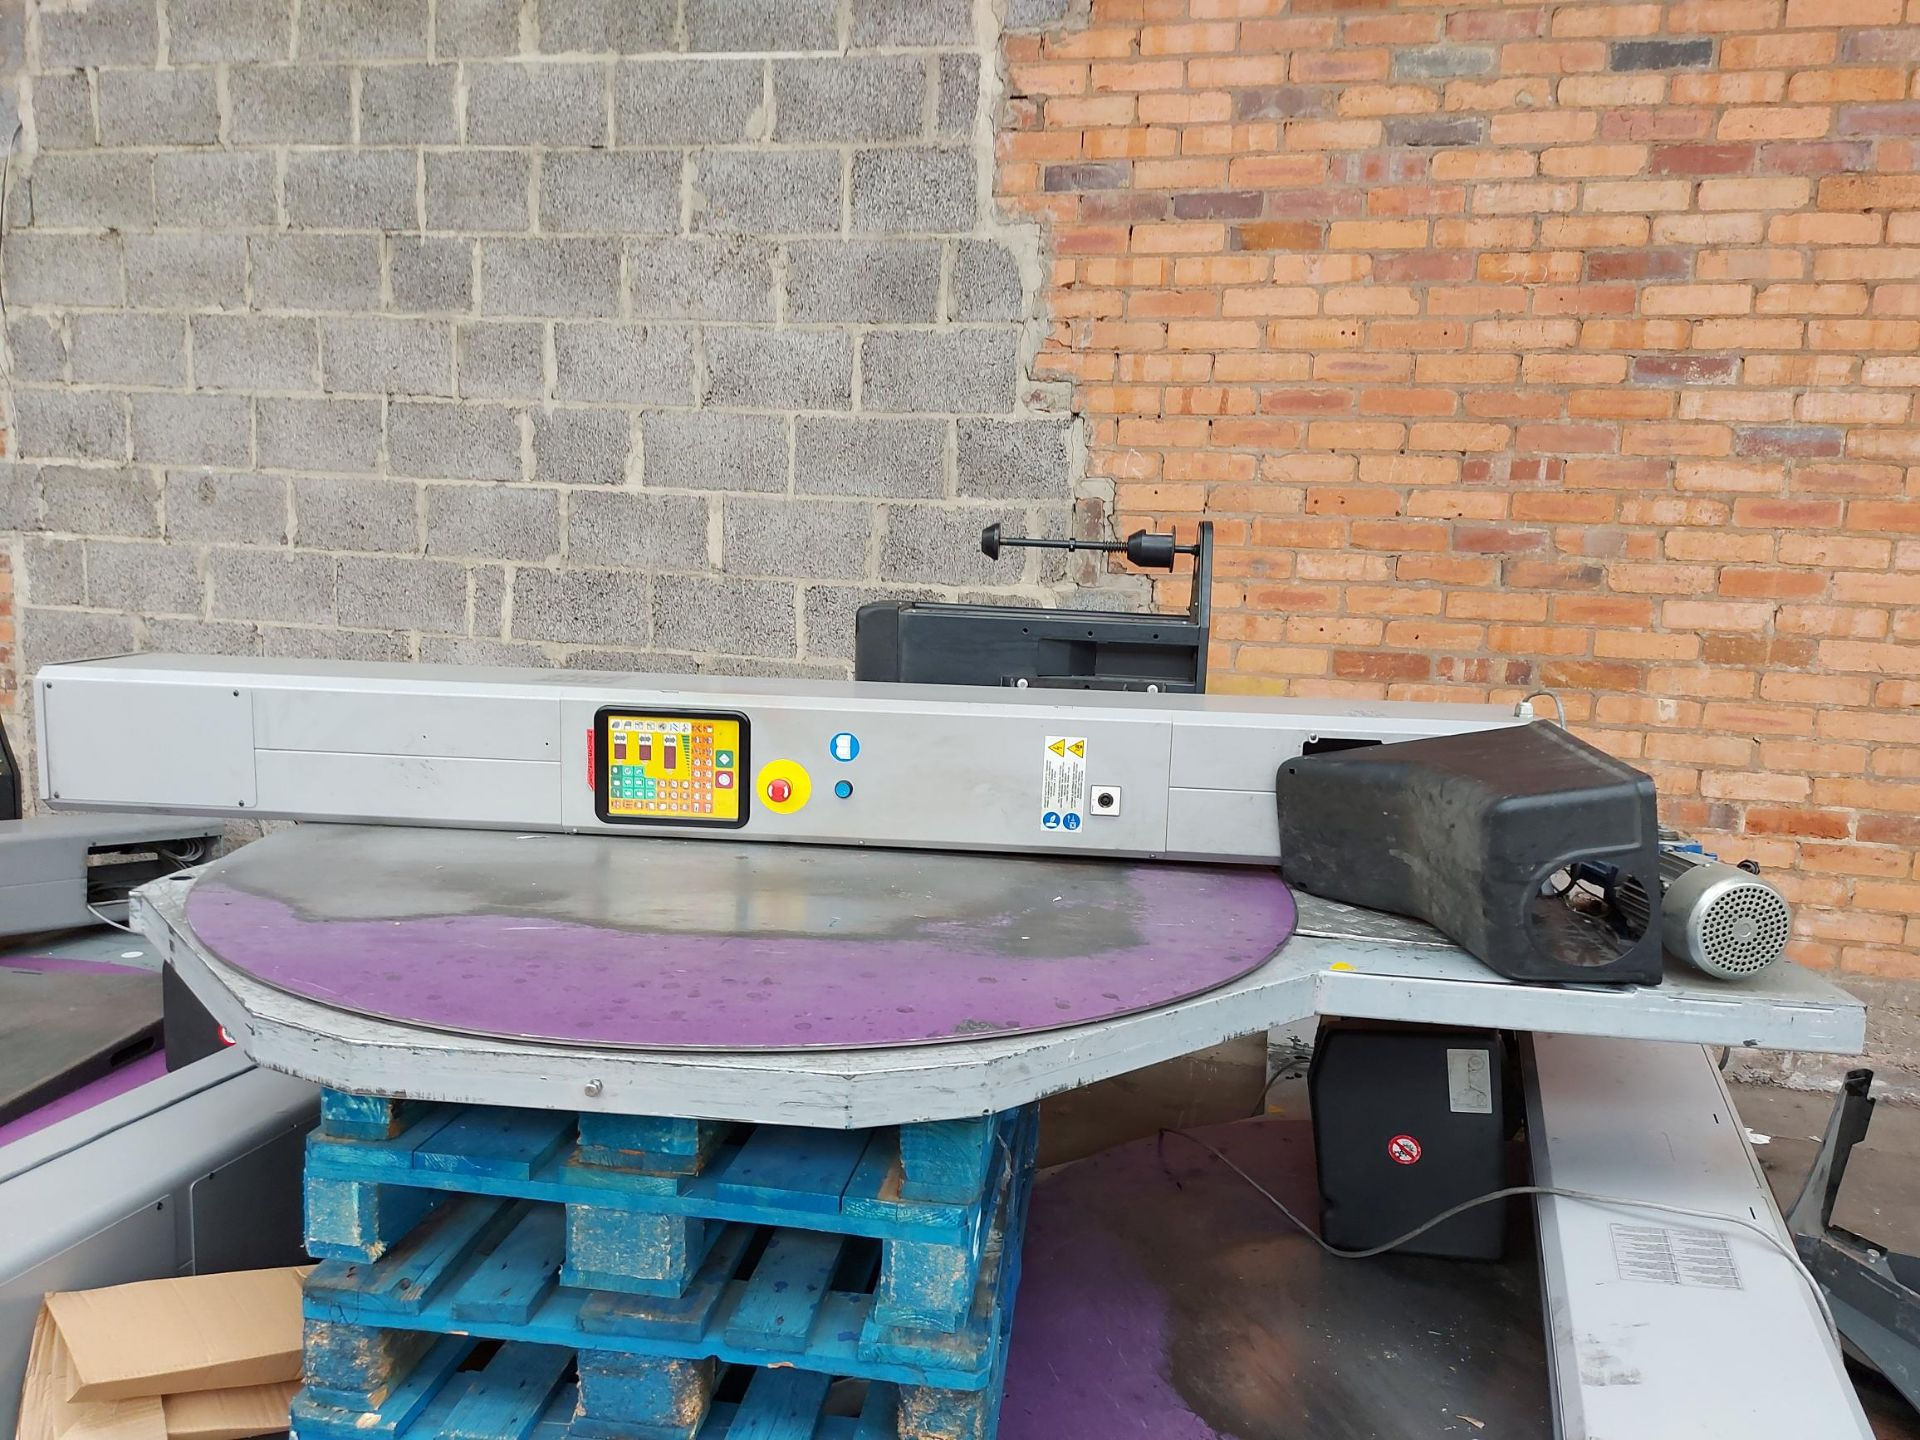 2016 ATLANTA FULL 115 DYNAMIC HIGHLINE TURNTABLE PALLET WRAPPING MACHINE WITH RAMP. 2.4M MAST - Image 5 of 6